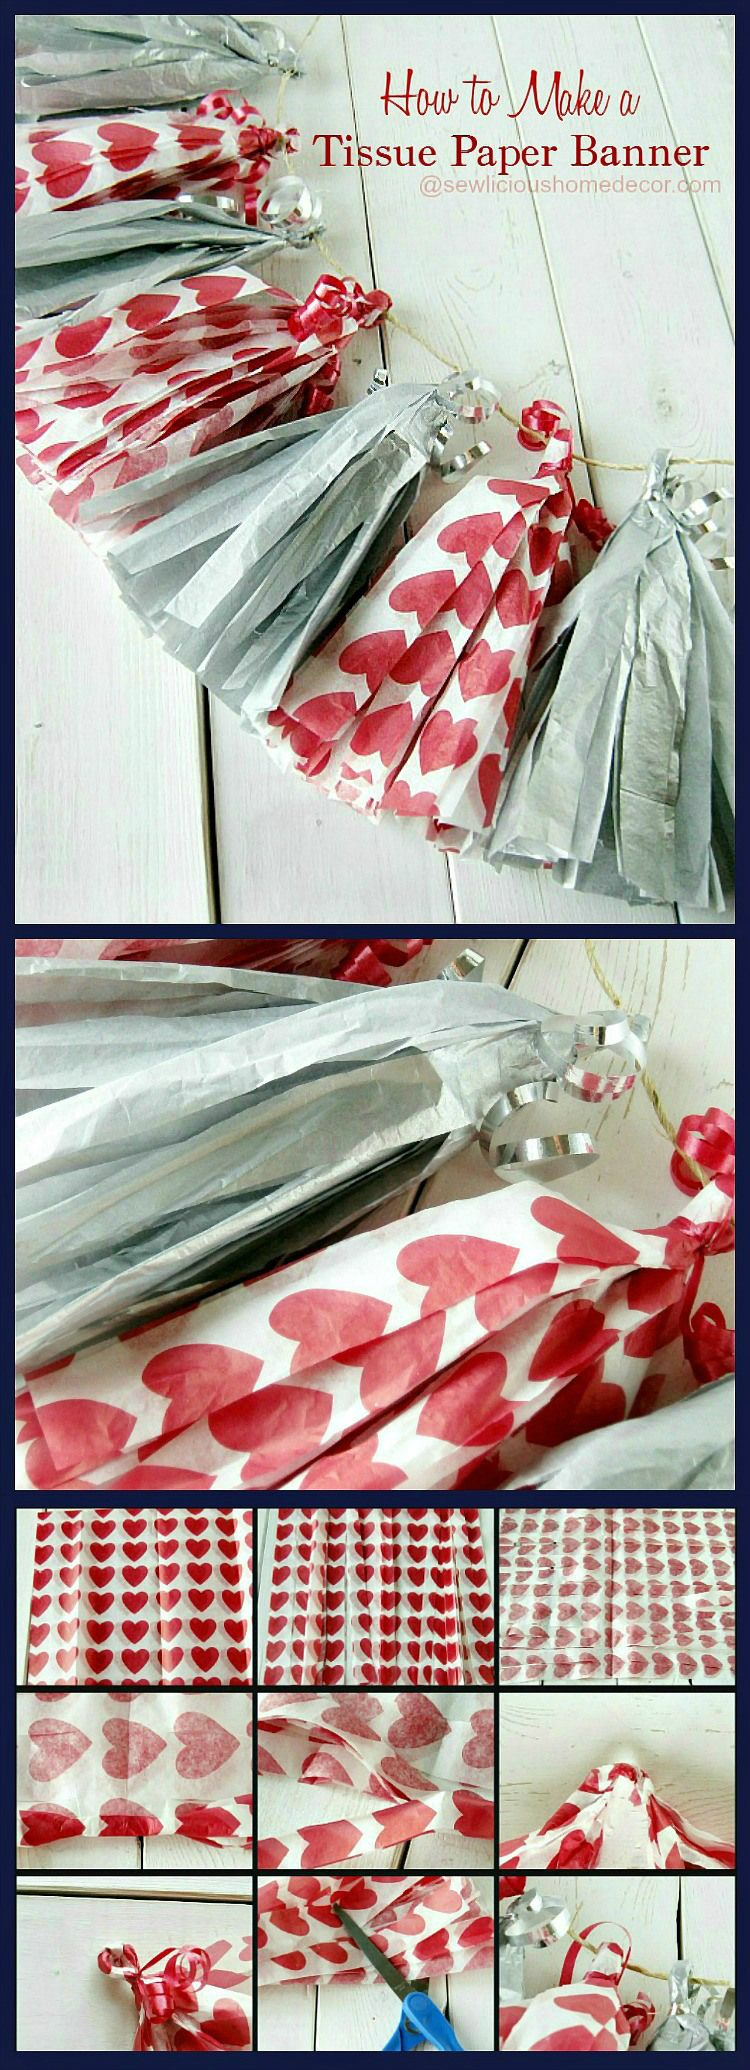 Tissue paper tassel tutorial - How To Make Tissue Paper Party Banners Quick And Easy Tutorial Sewlicioushomedecor Com